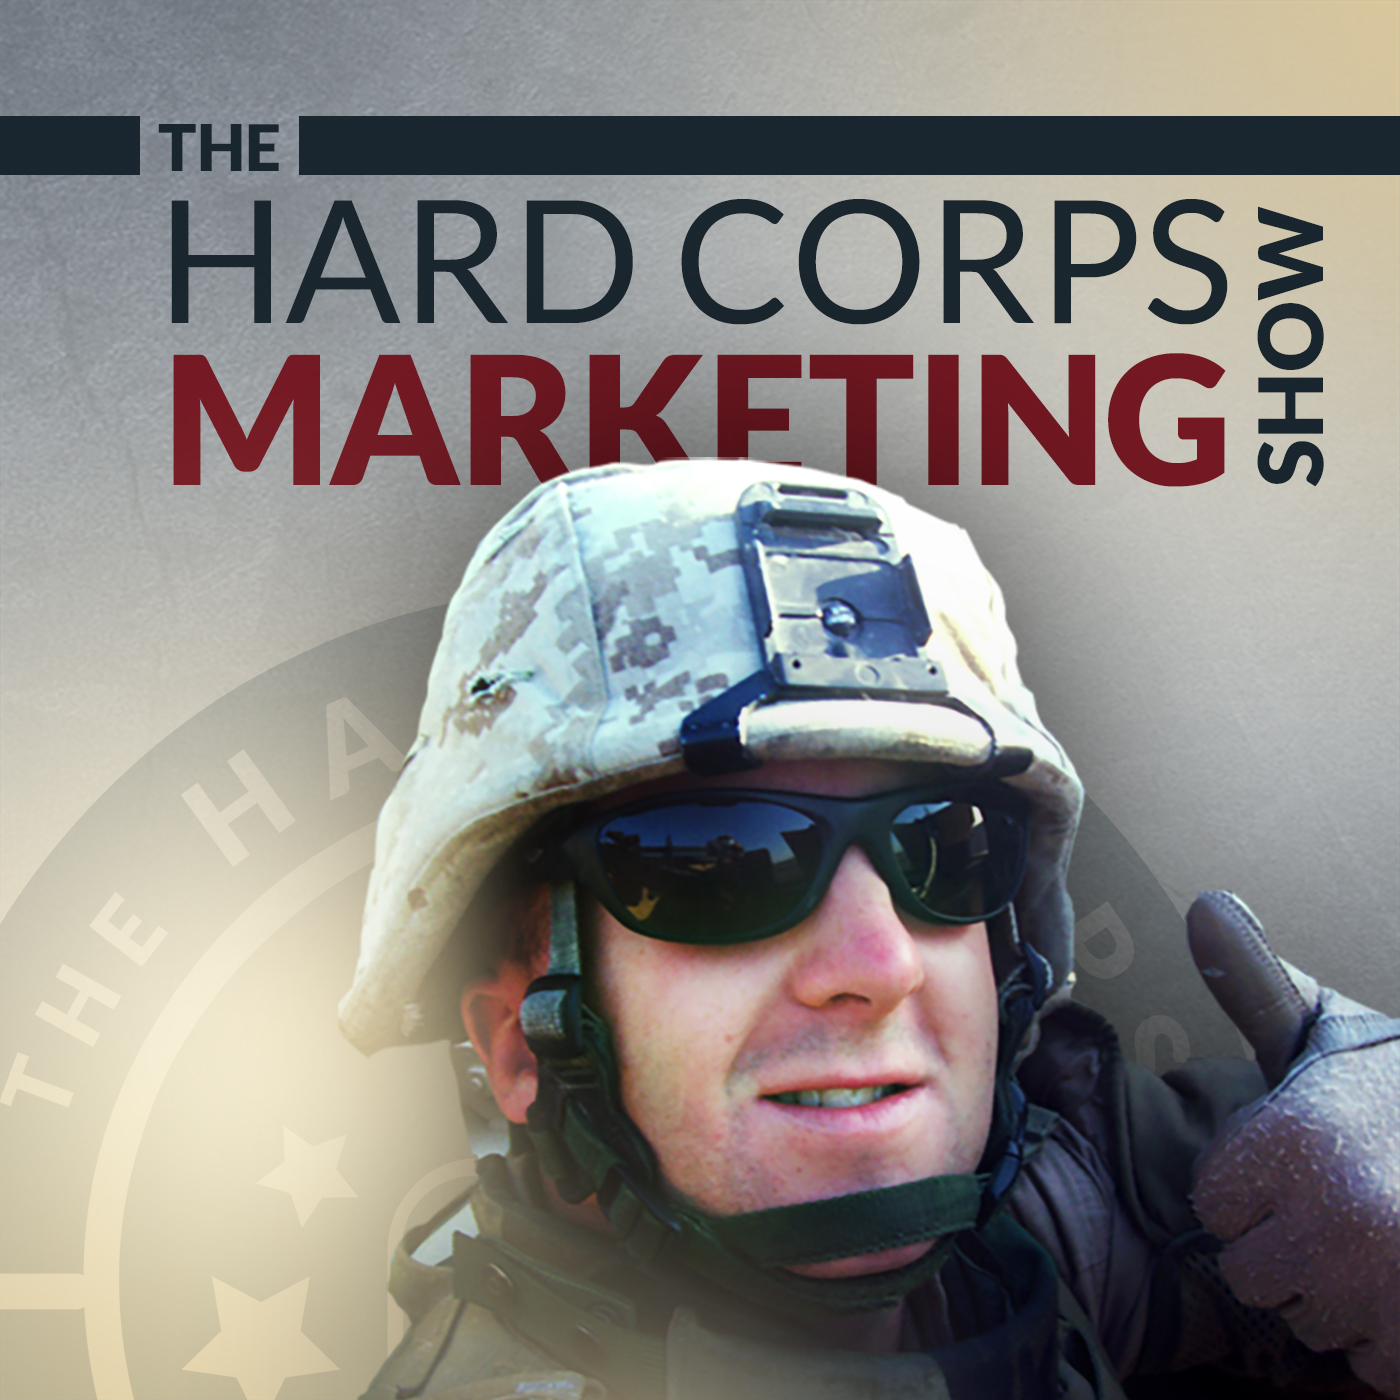 Marketing Automation Masterminds - Adam Post - Hard Corps Marketing Show #73